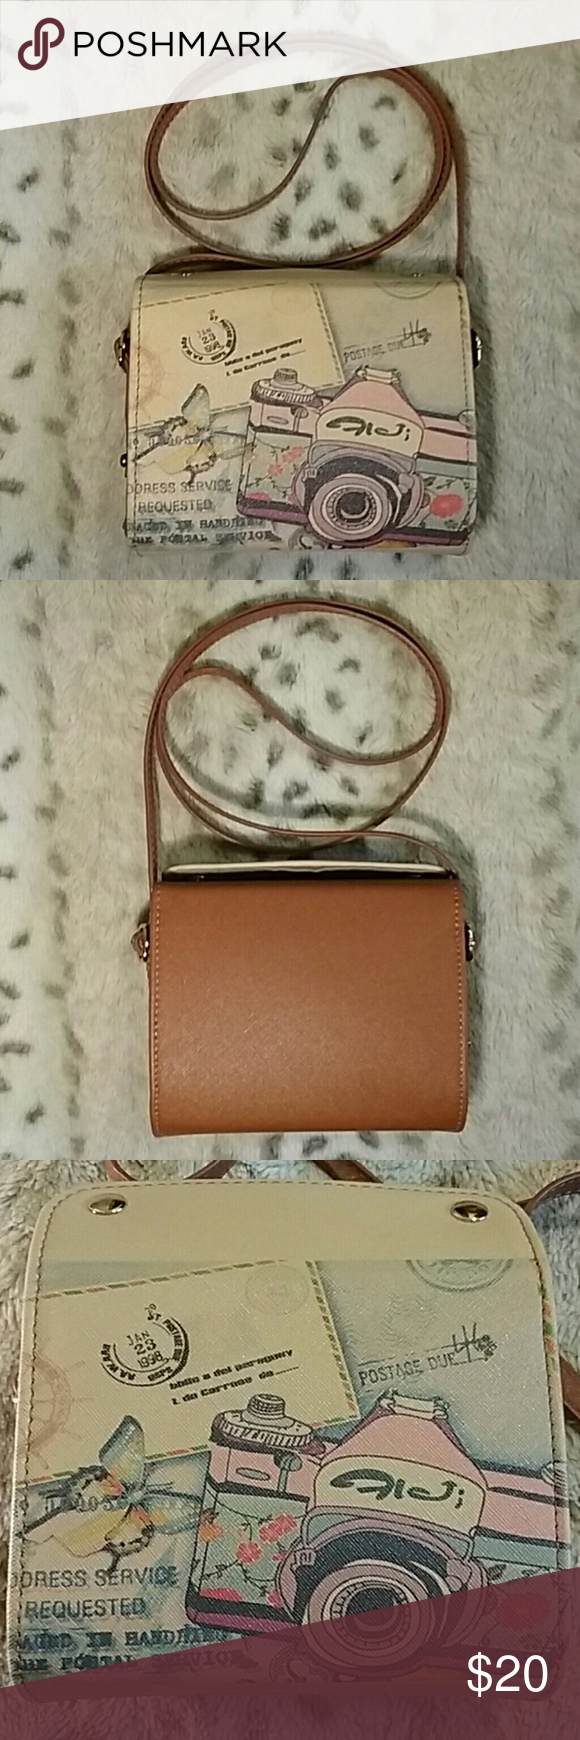 Crossbody Purse Pre-Used condition small crossbody camera purse. Sturdy with snap button closure. Includes one small pocket. In great condition, just has some light chipping/peeling on the top lip of the purse (pictured above). Strap is not adjustable but I'm about 5'7 and it comes down to my hip/lower torso. ☆Make an offer!☆ Bags Crossbody Bags #camerapurse